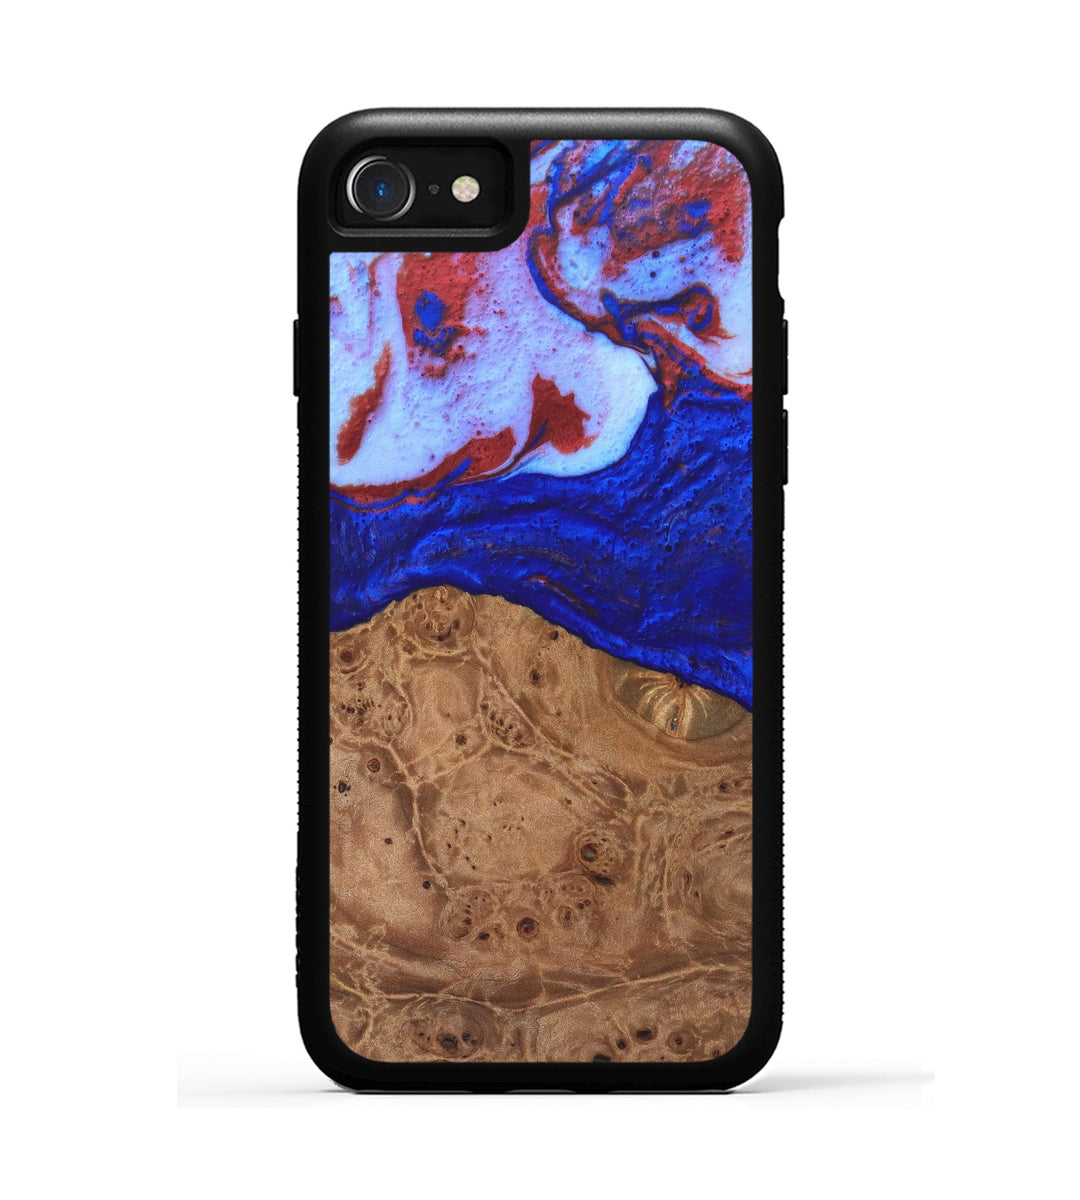 iPhone 8 Wood+Resin Case - Robertson (Blue & Red, 334389)